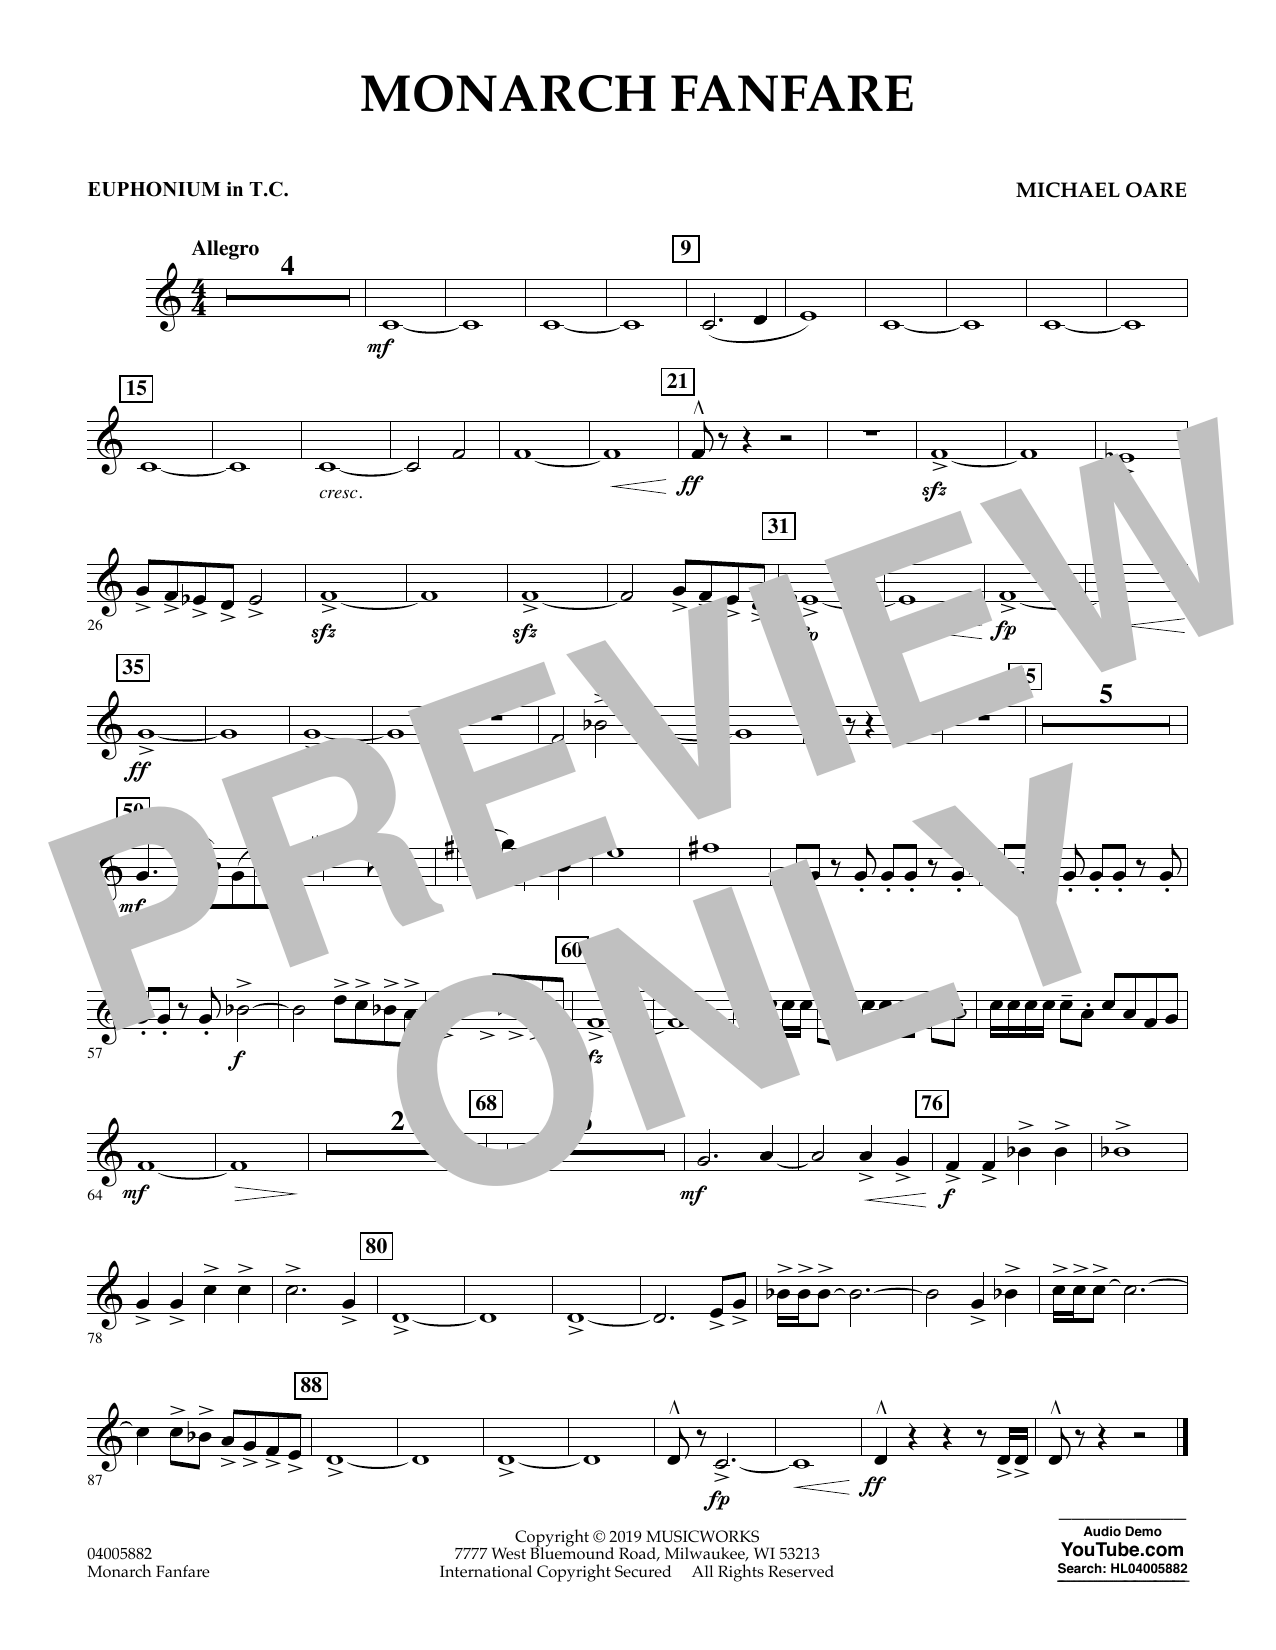 Michael Oare Monarch Fanfare - Euphonium in Treble Clef sheet music preview music notes and score for Concert Band including 1 page(s)